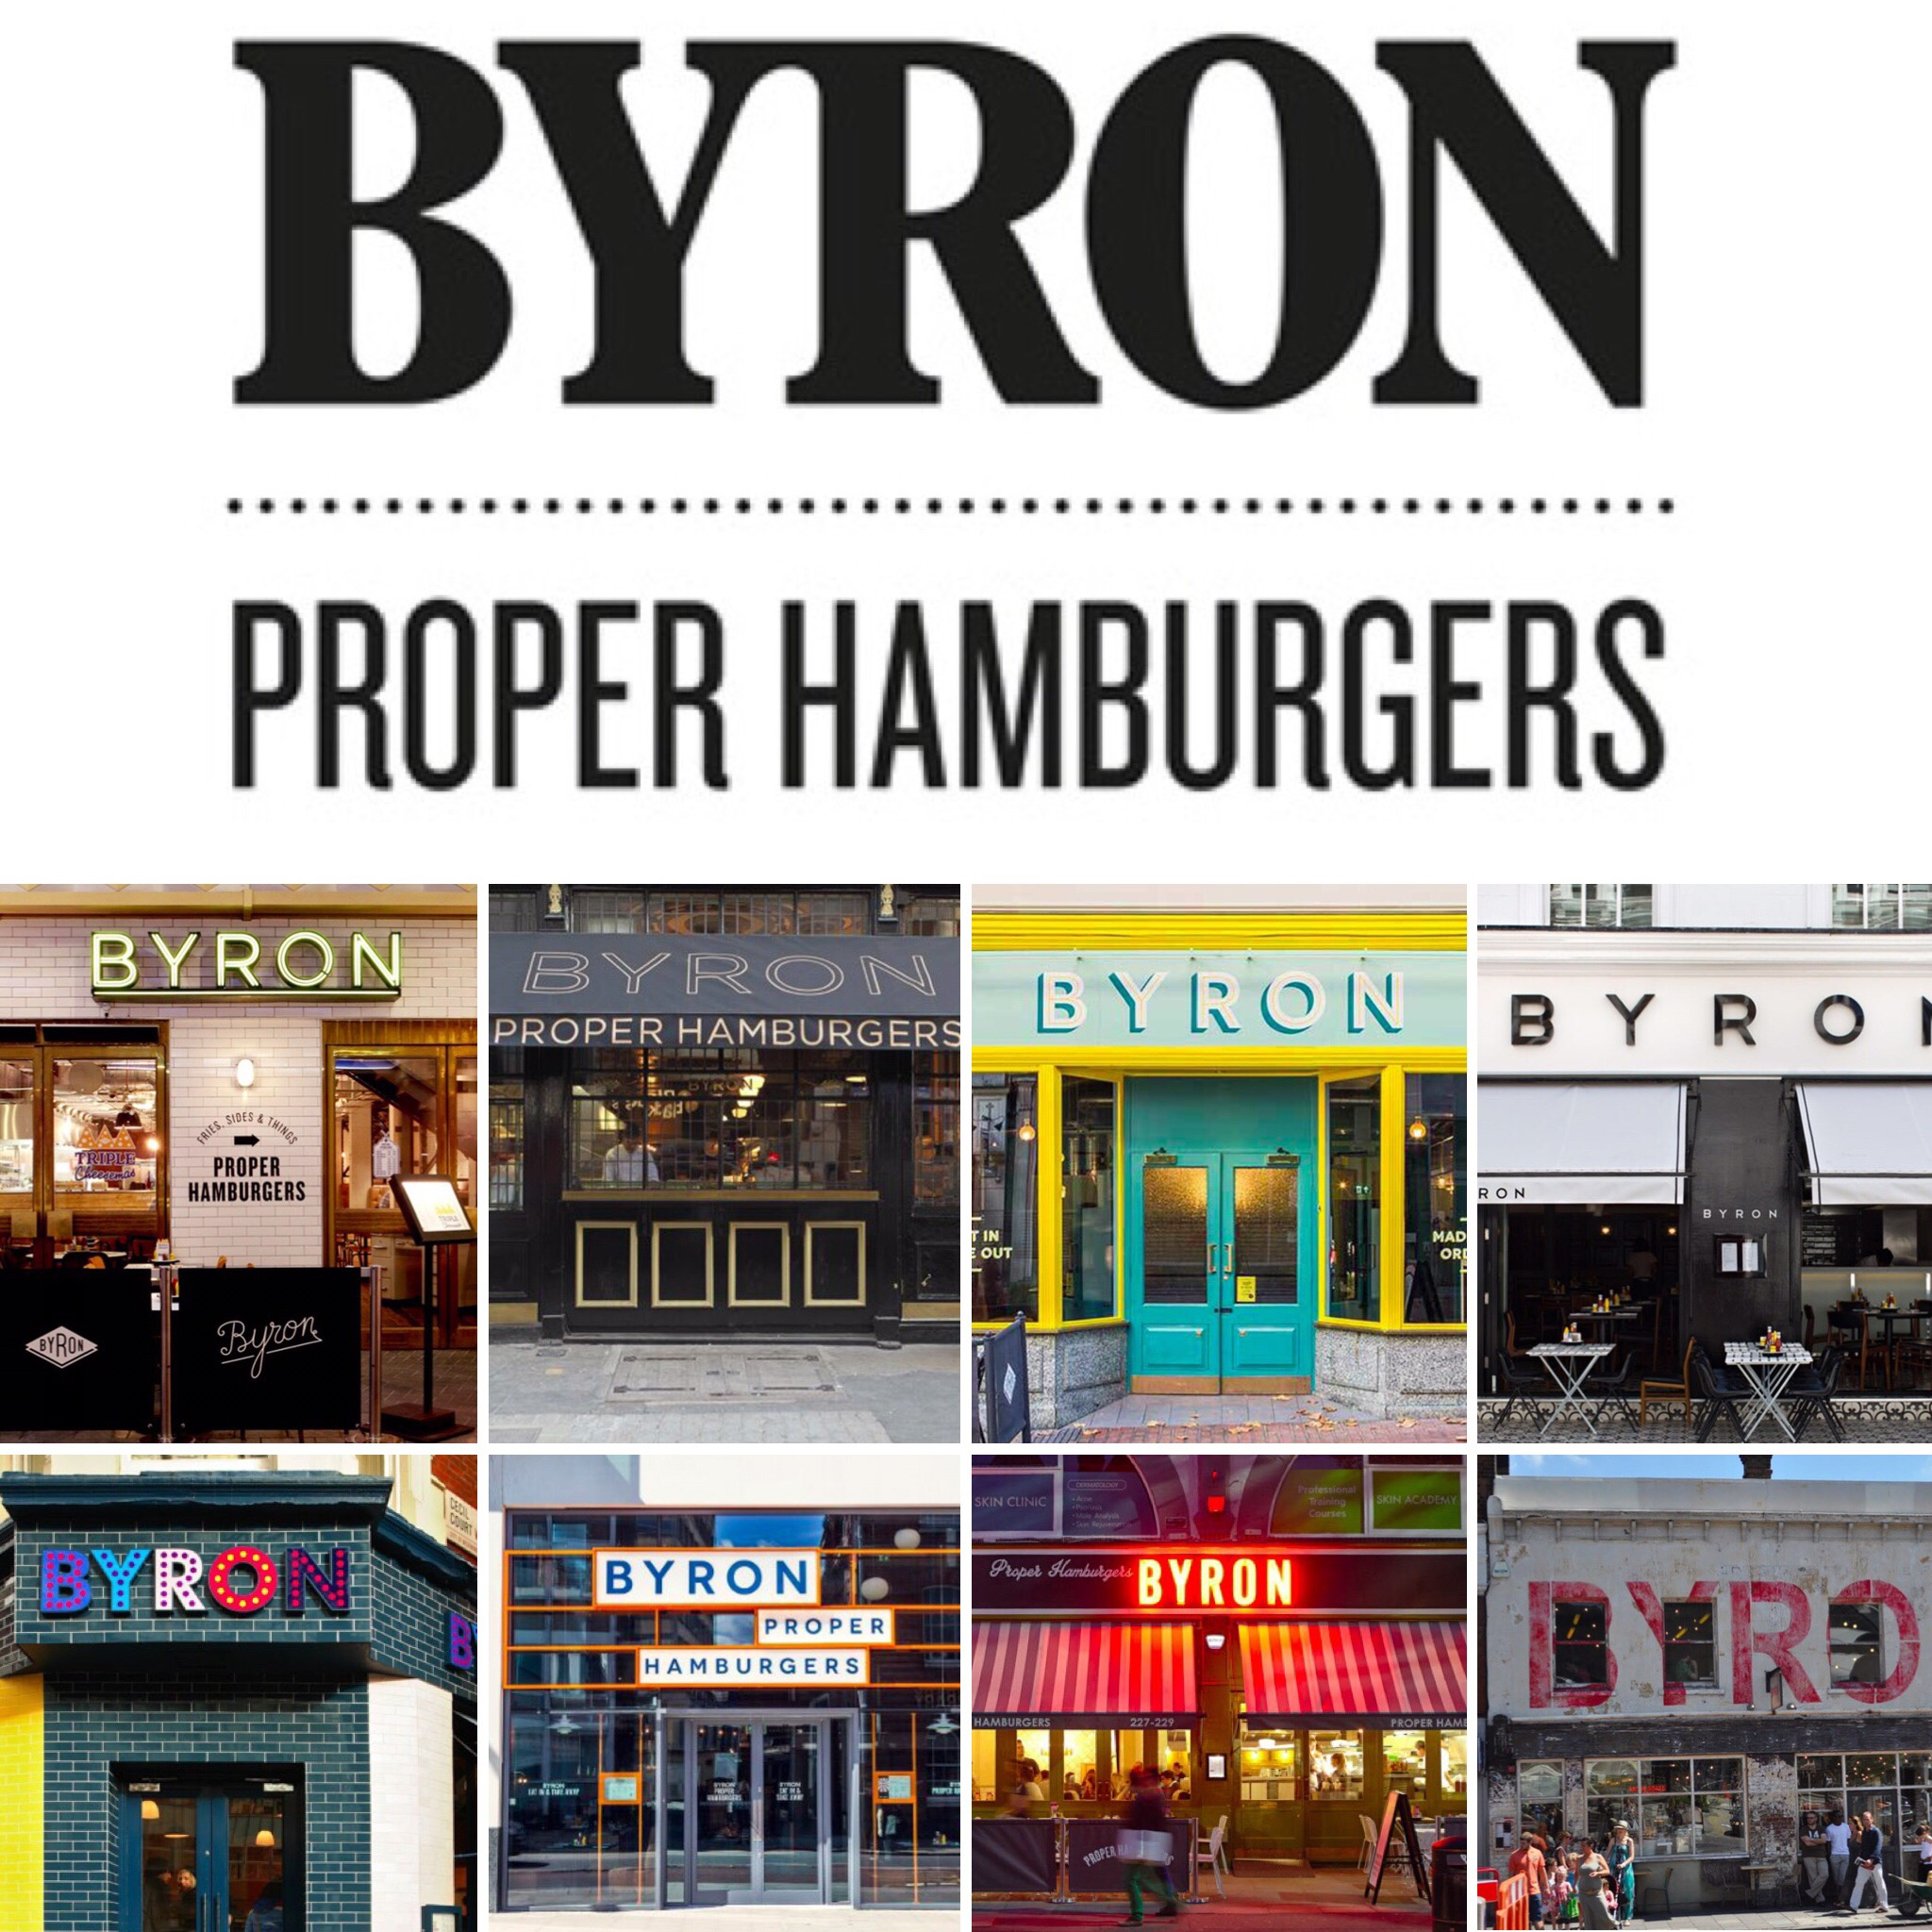 Byron logo and restaurants